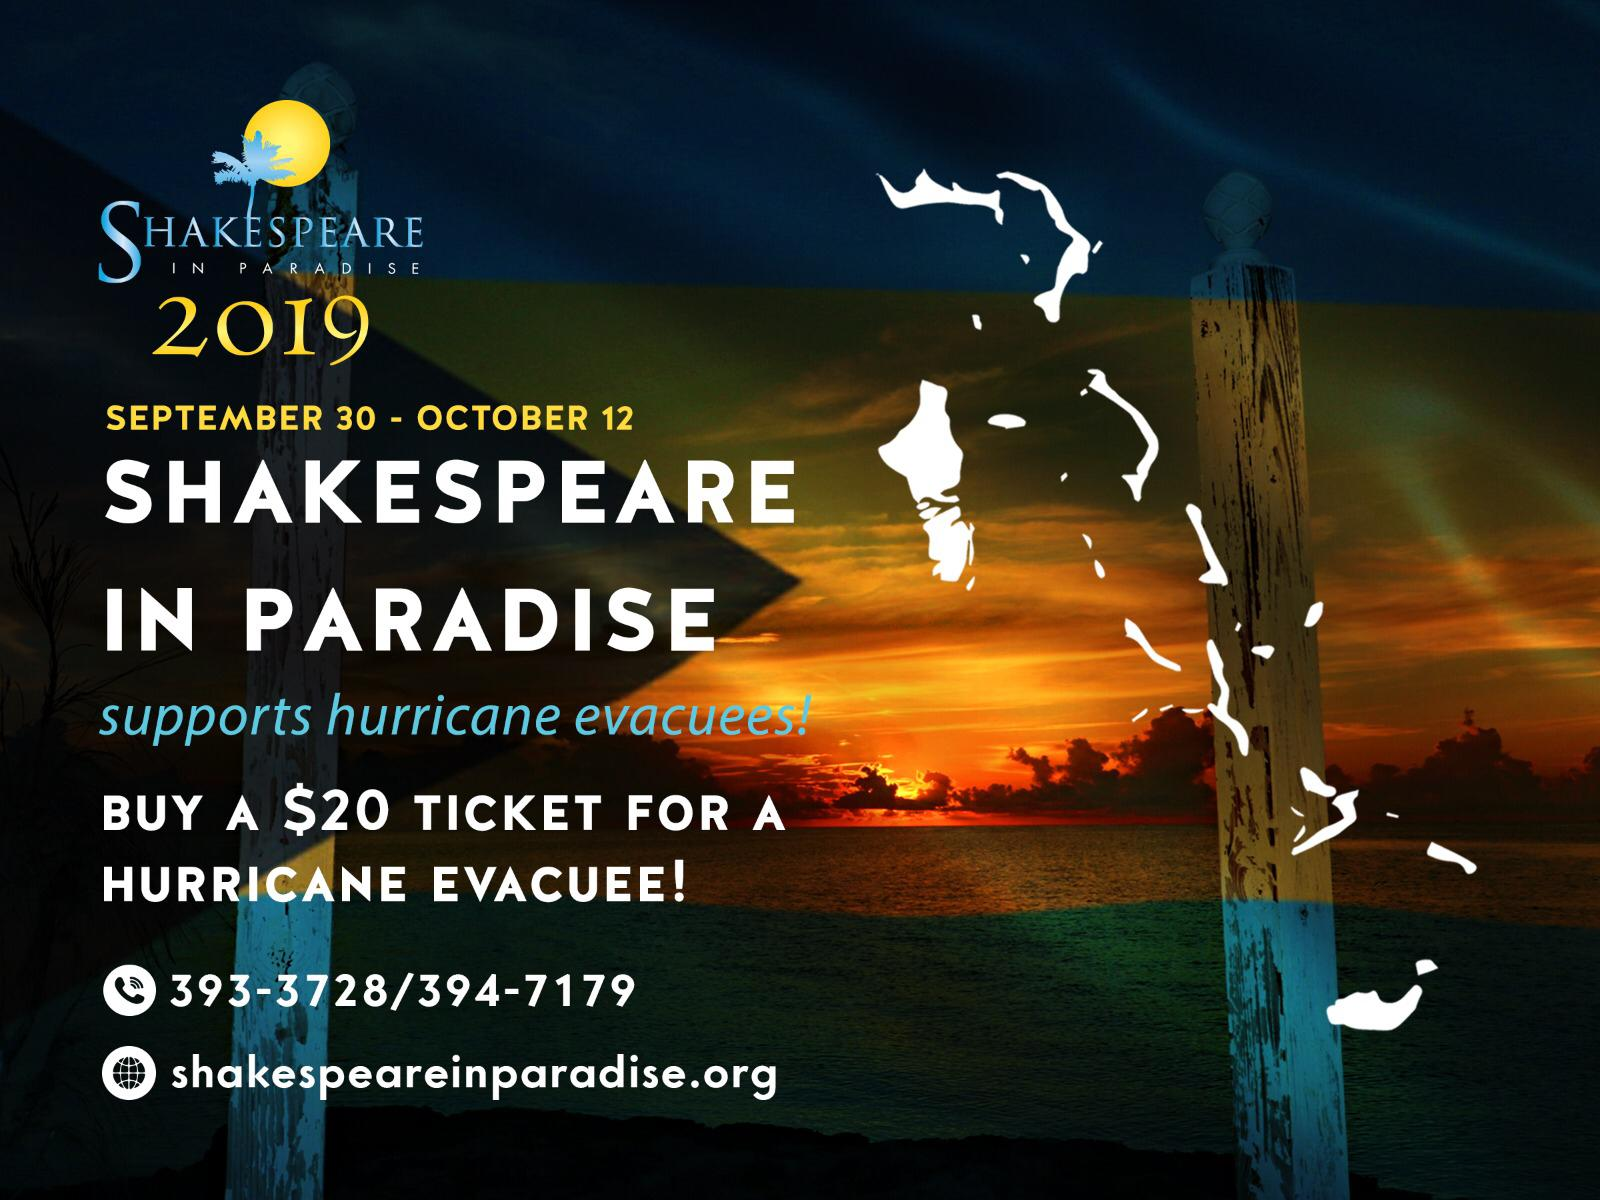 Shakespeare in Paradise 2019